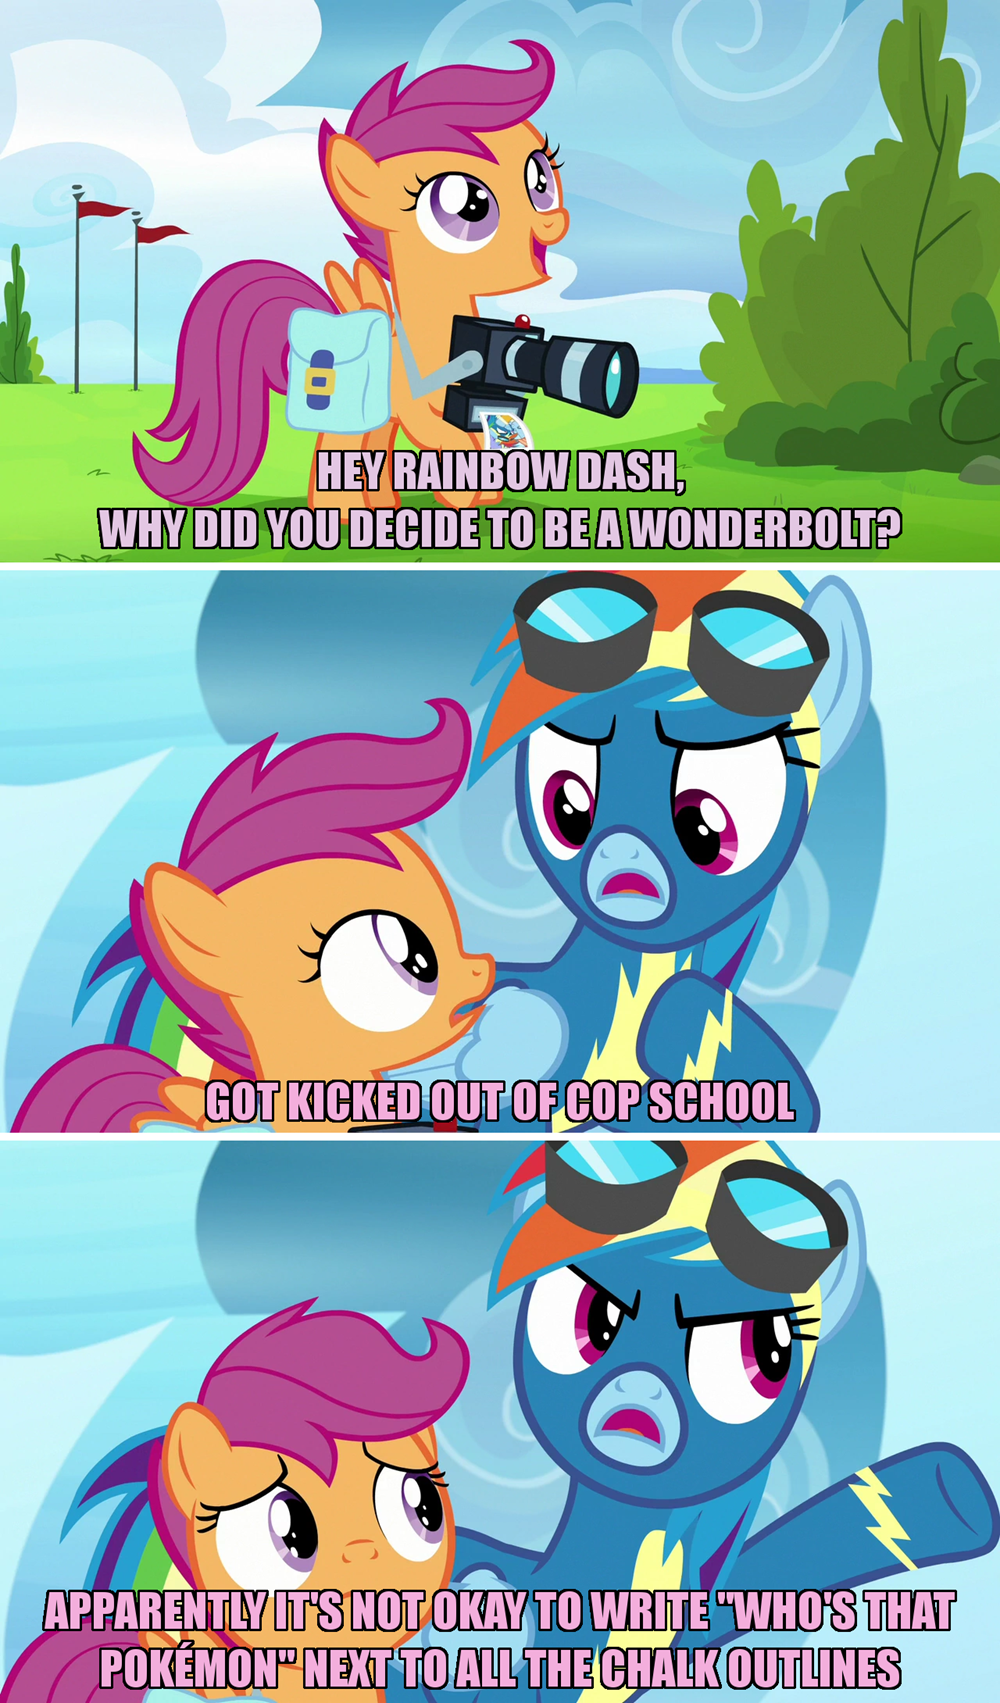 Career Choices My Little Brony My Little Pony Friendship Is Magic Brony Pokemon Go Mlp[fim abriged auditions for scootaloo. little pony friendship is magic brony